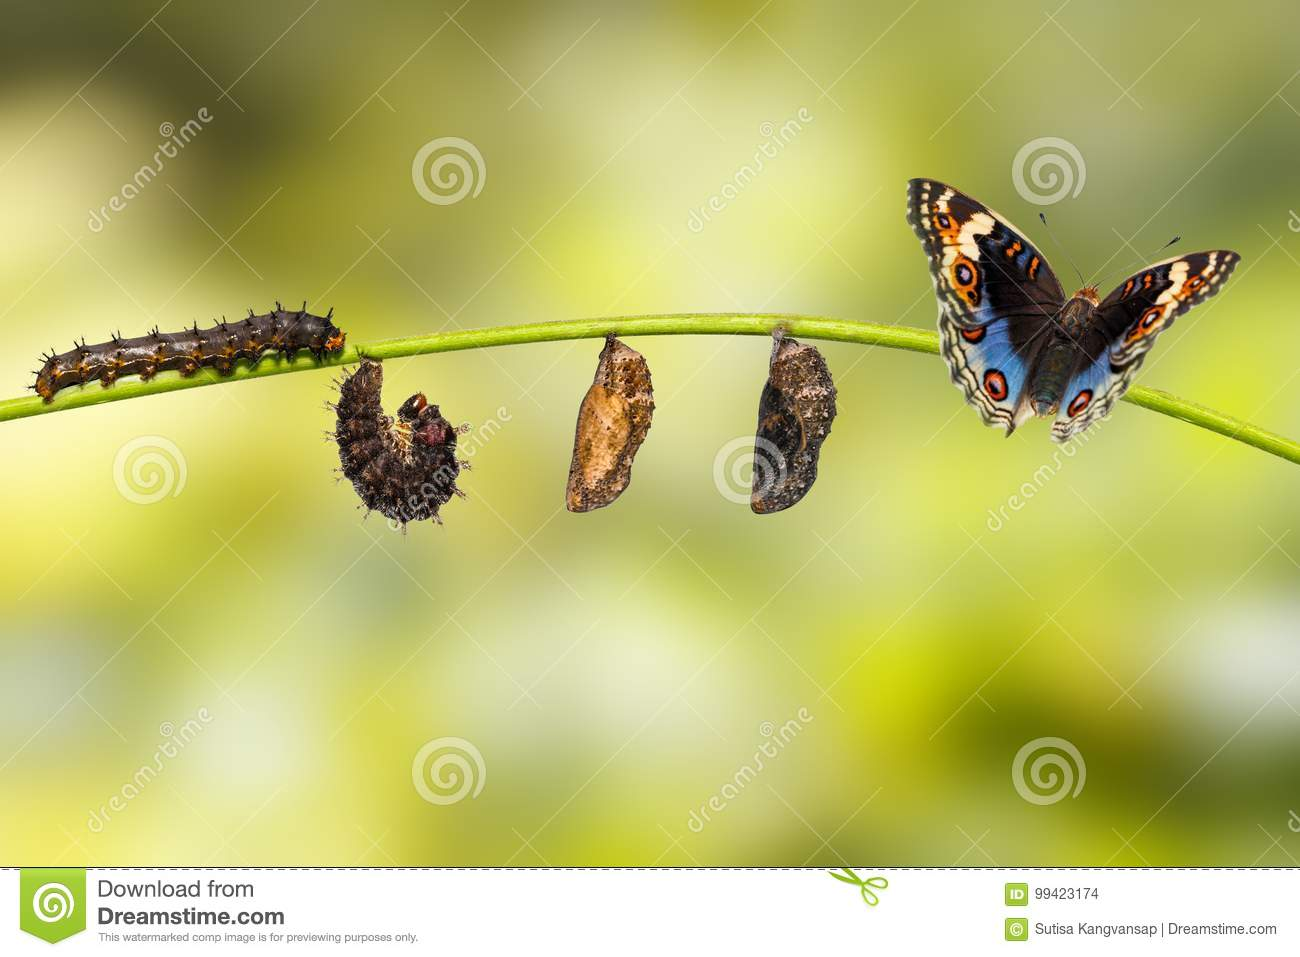 Life cycle of blue pansy butterfly Junonia orithya Linnaeus